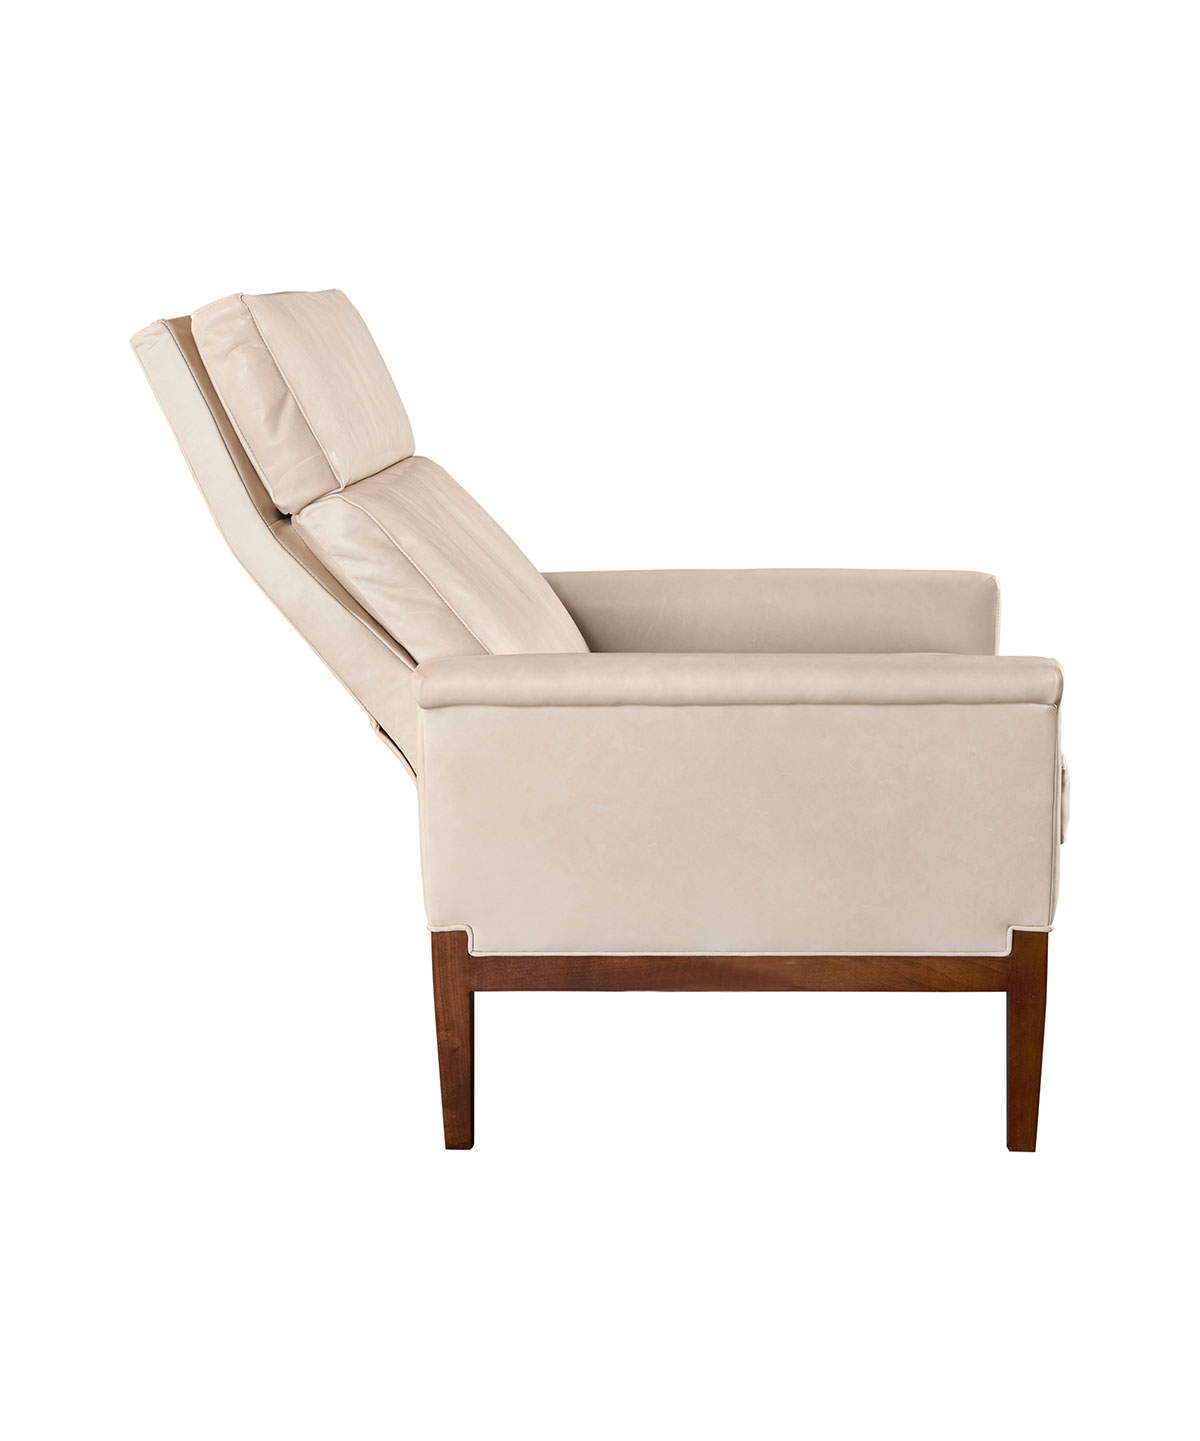 Anderson Chair